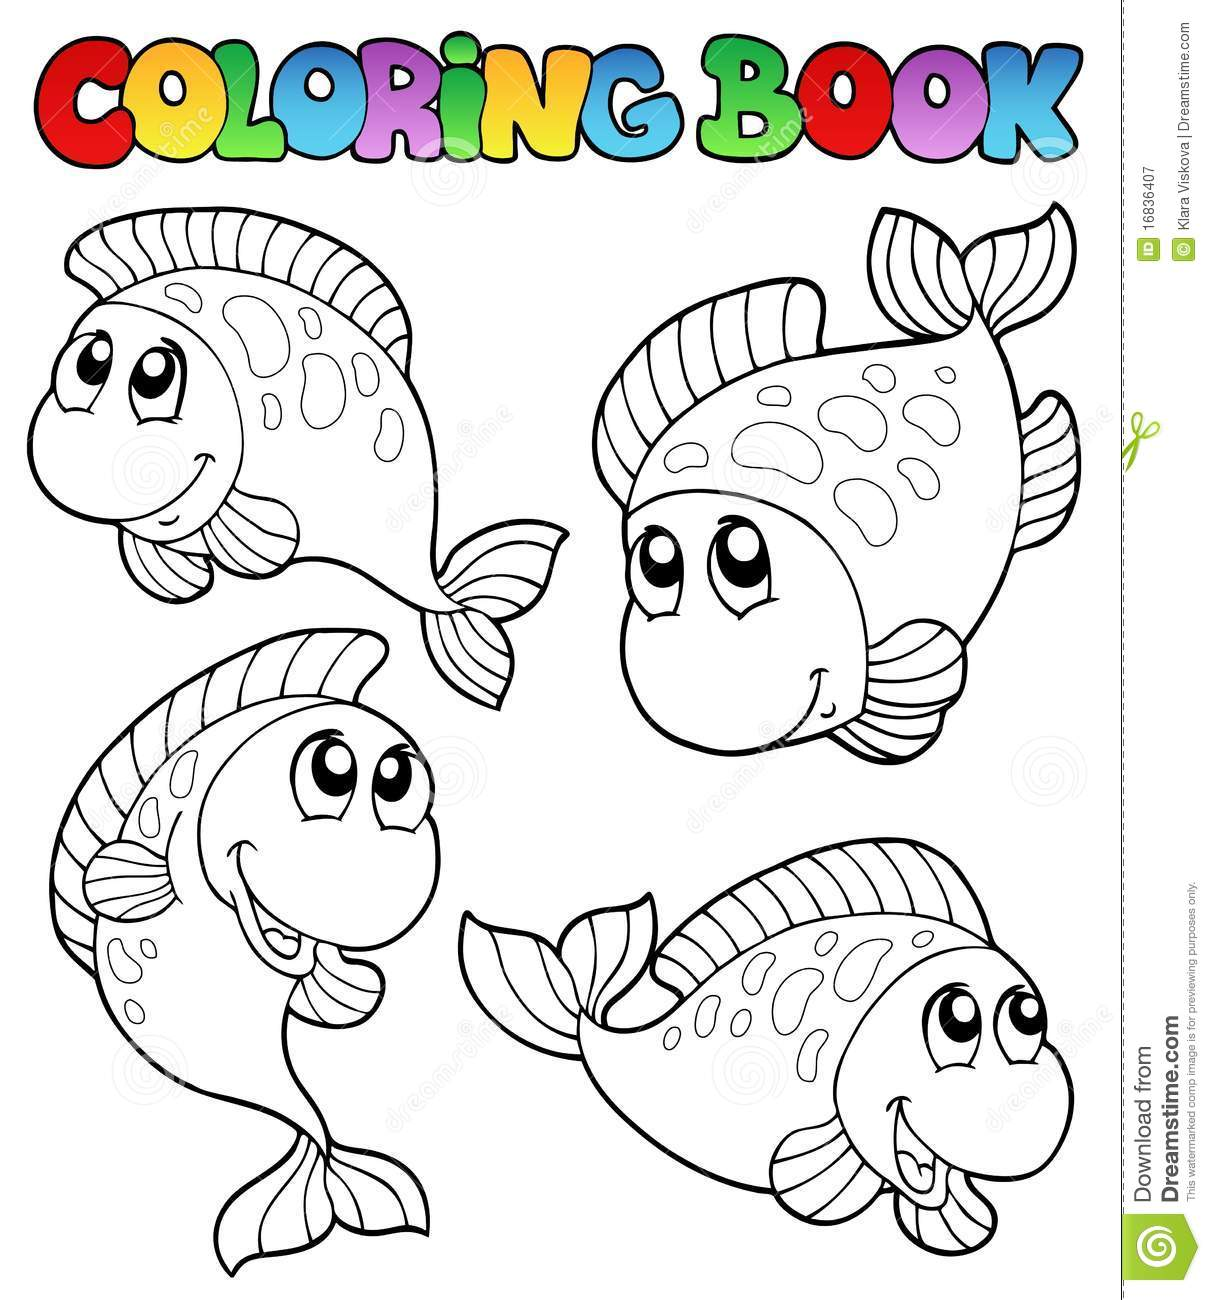 Coloring Book With Four Fishes Stock Vector - Illustration of ...